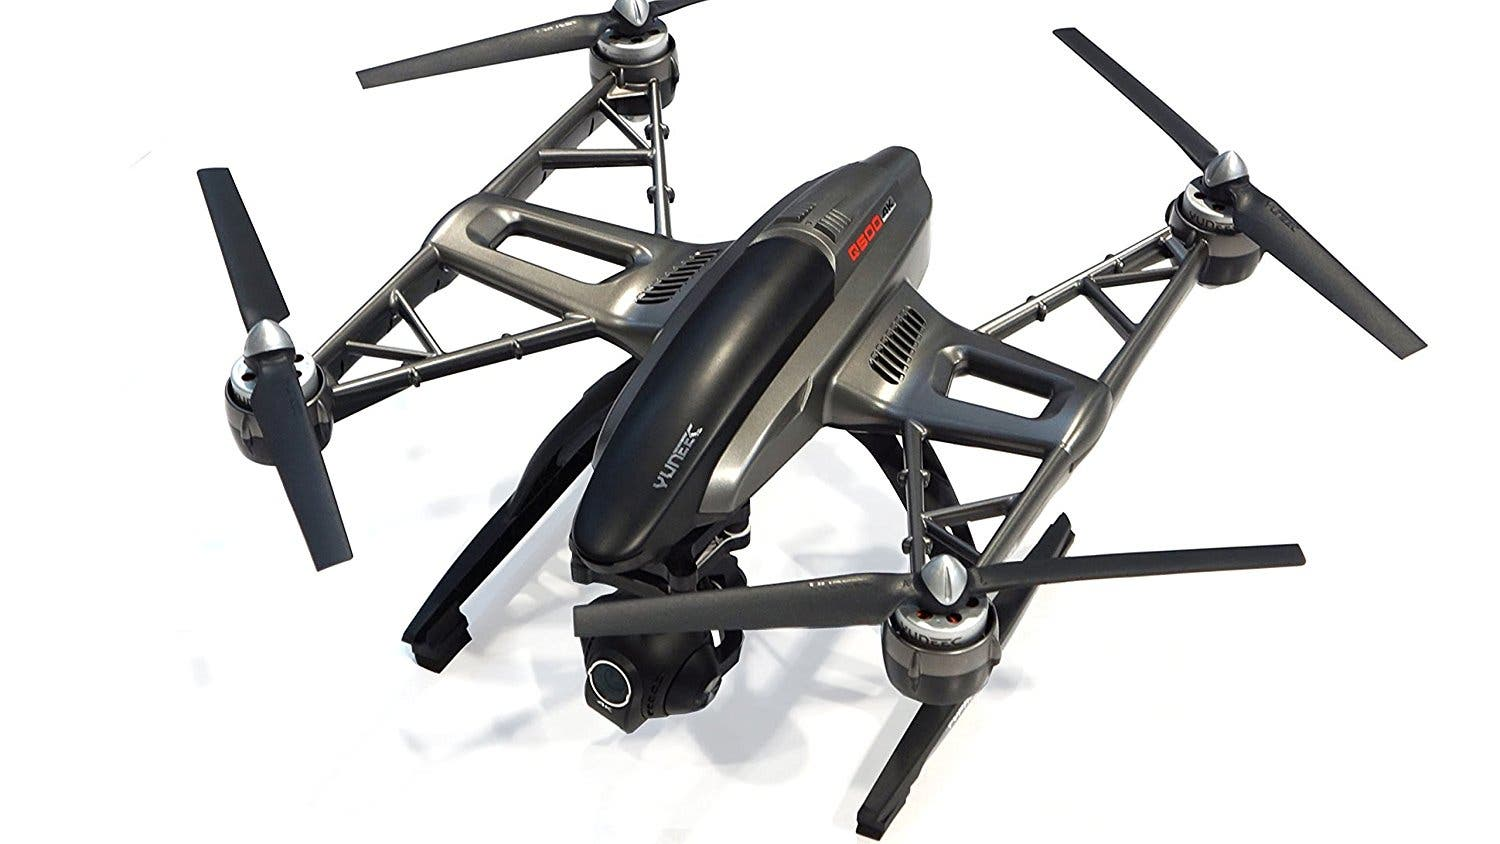 yuneec typhoon q500 4k drone 40 cheaper with our coupon. Black Bedroom Furniture Sets. Home Design Ideas